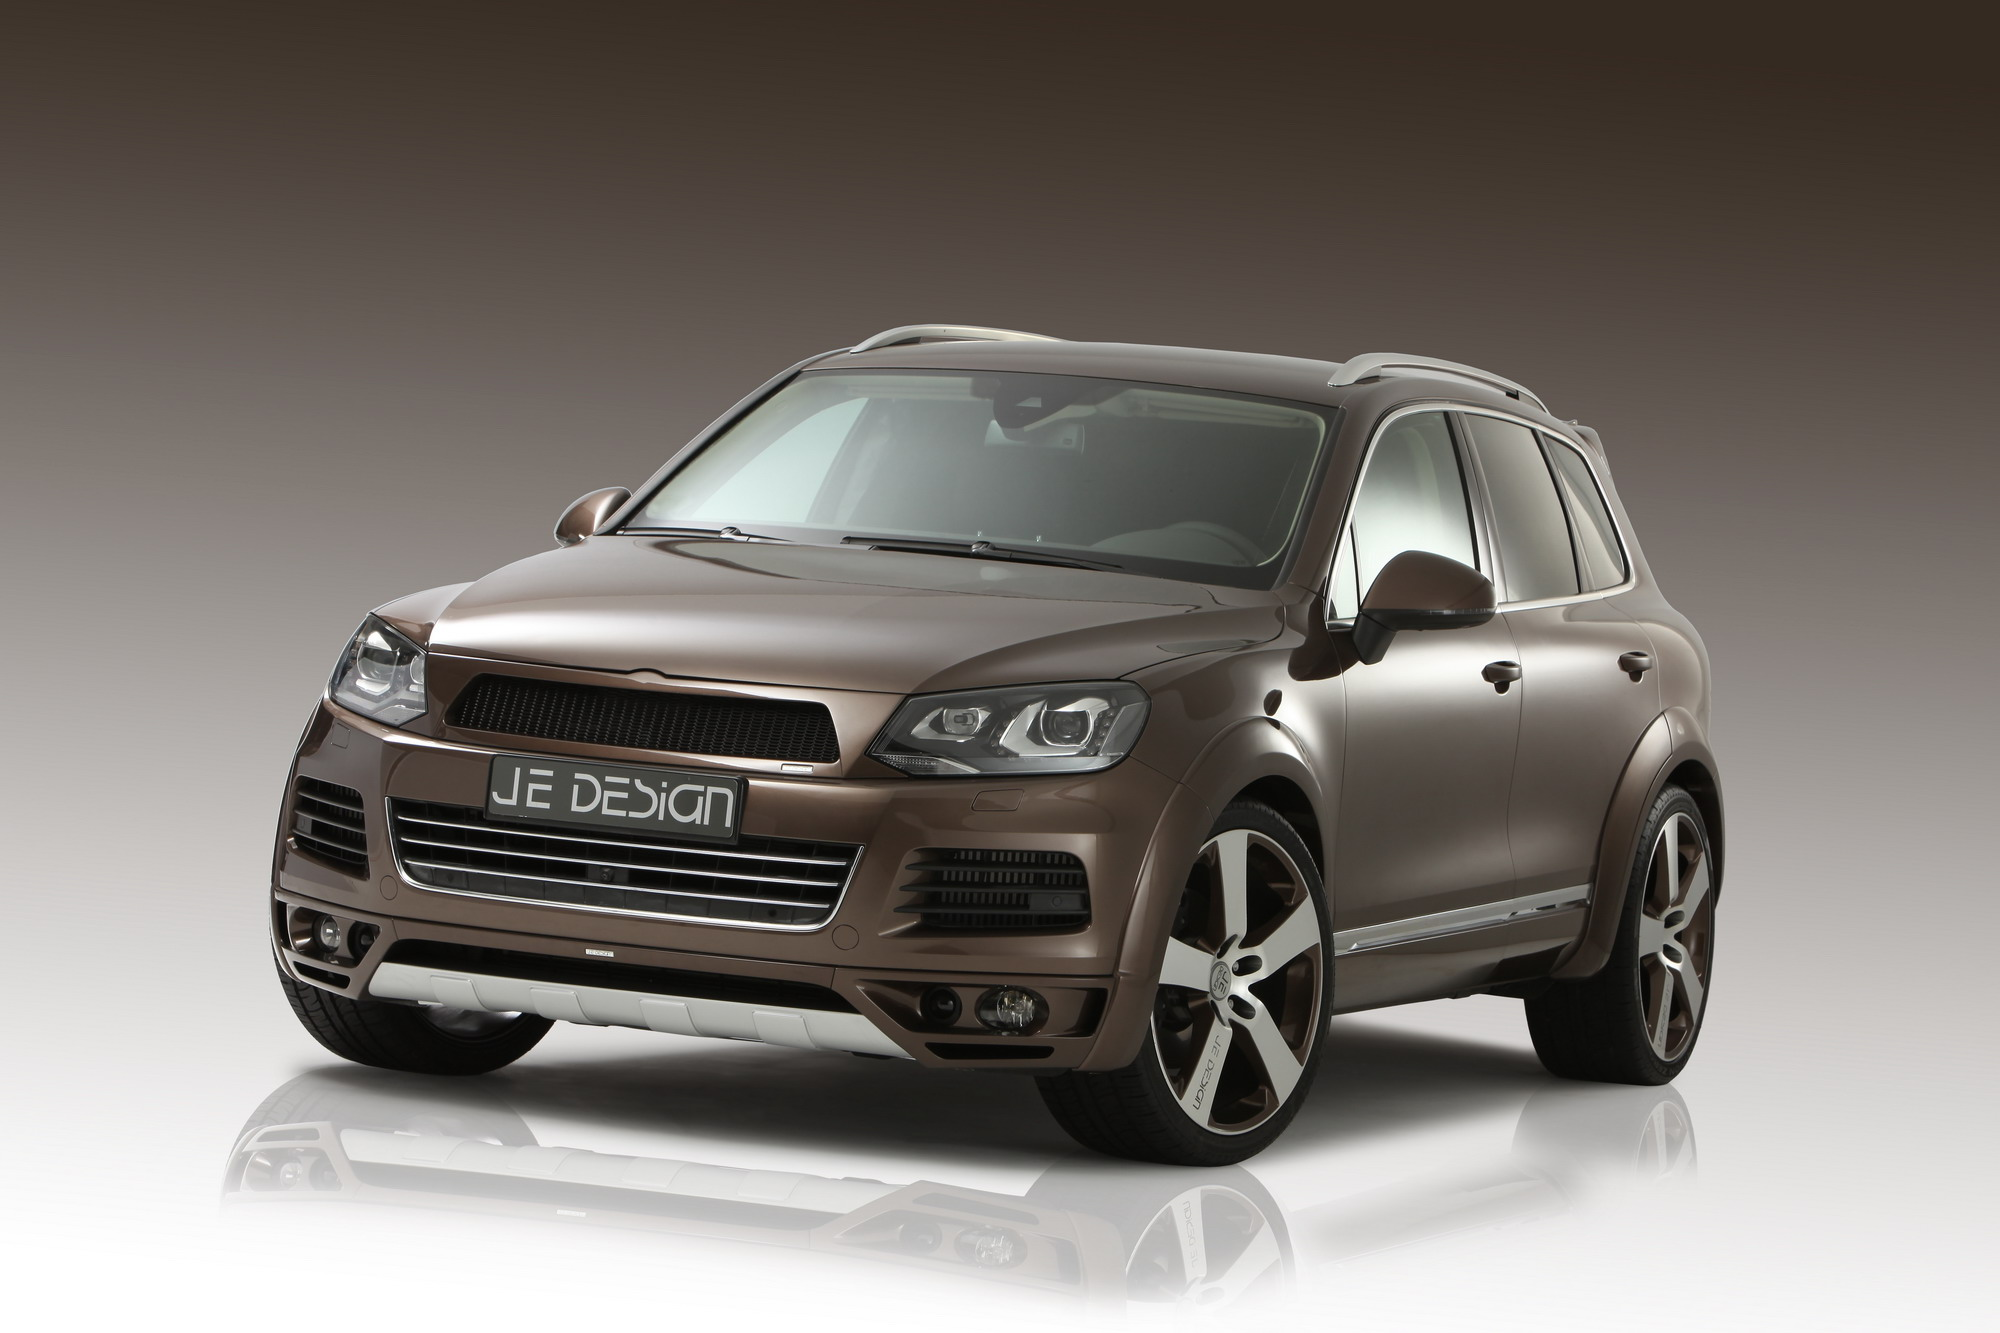 2010 volkswagen touareg by je design review gallery. Black Bedroom Furniture Sets. Home Design Ideas